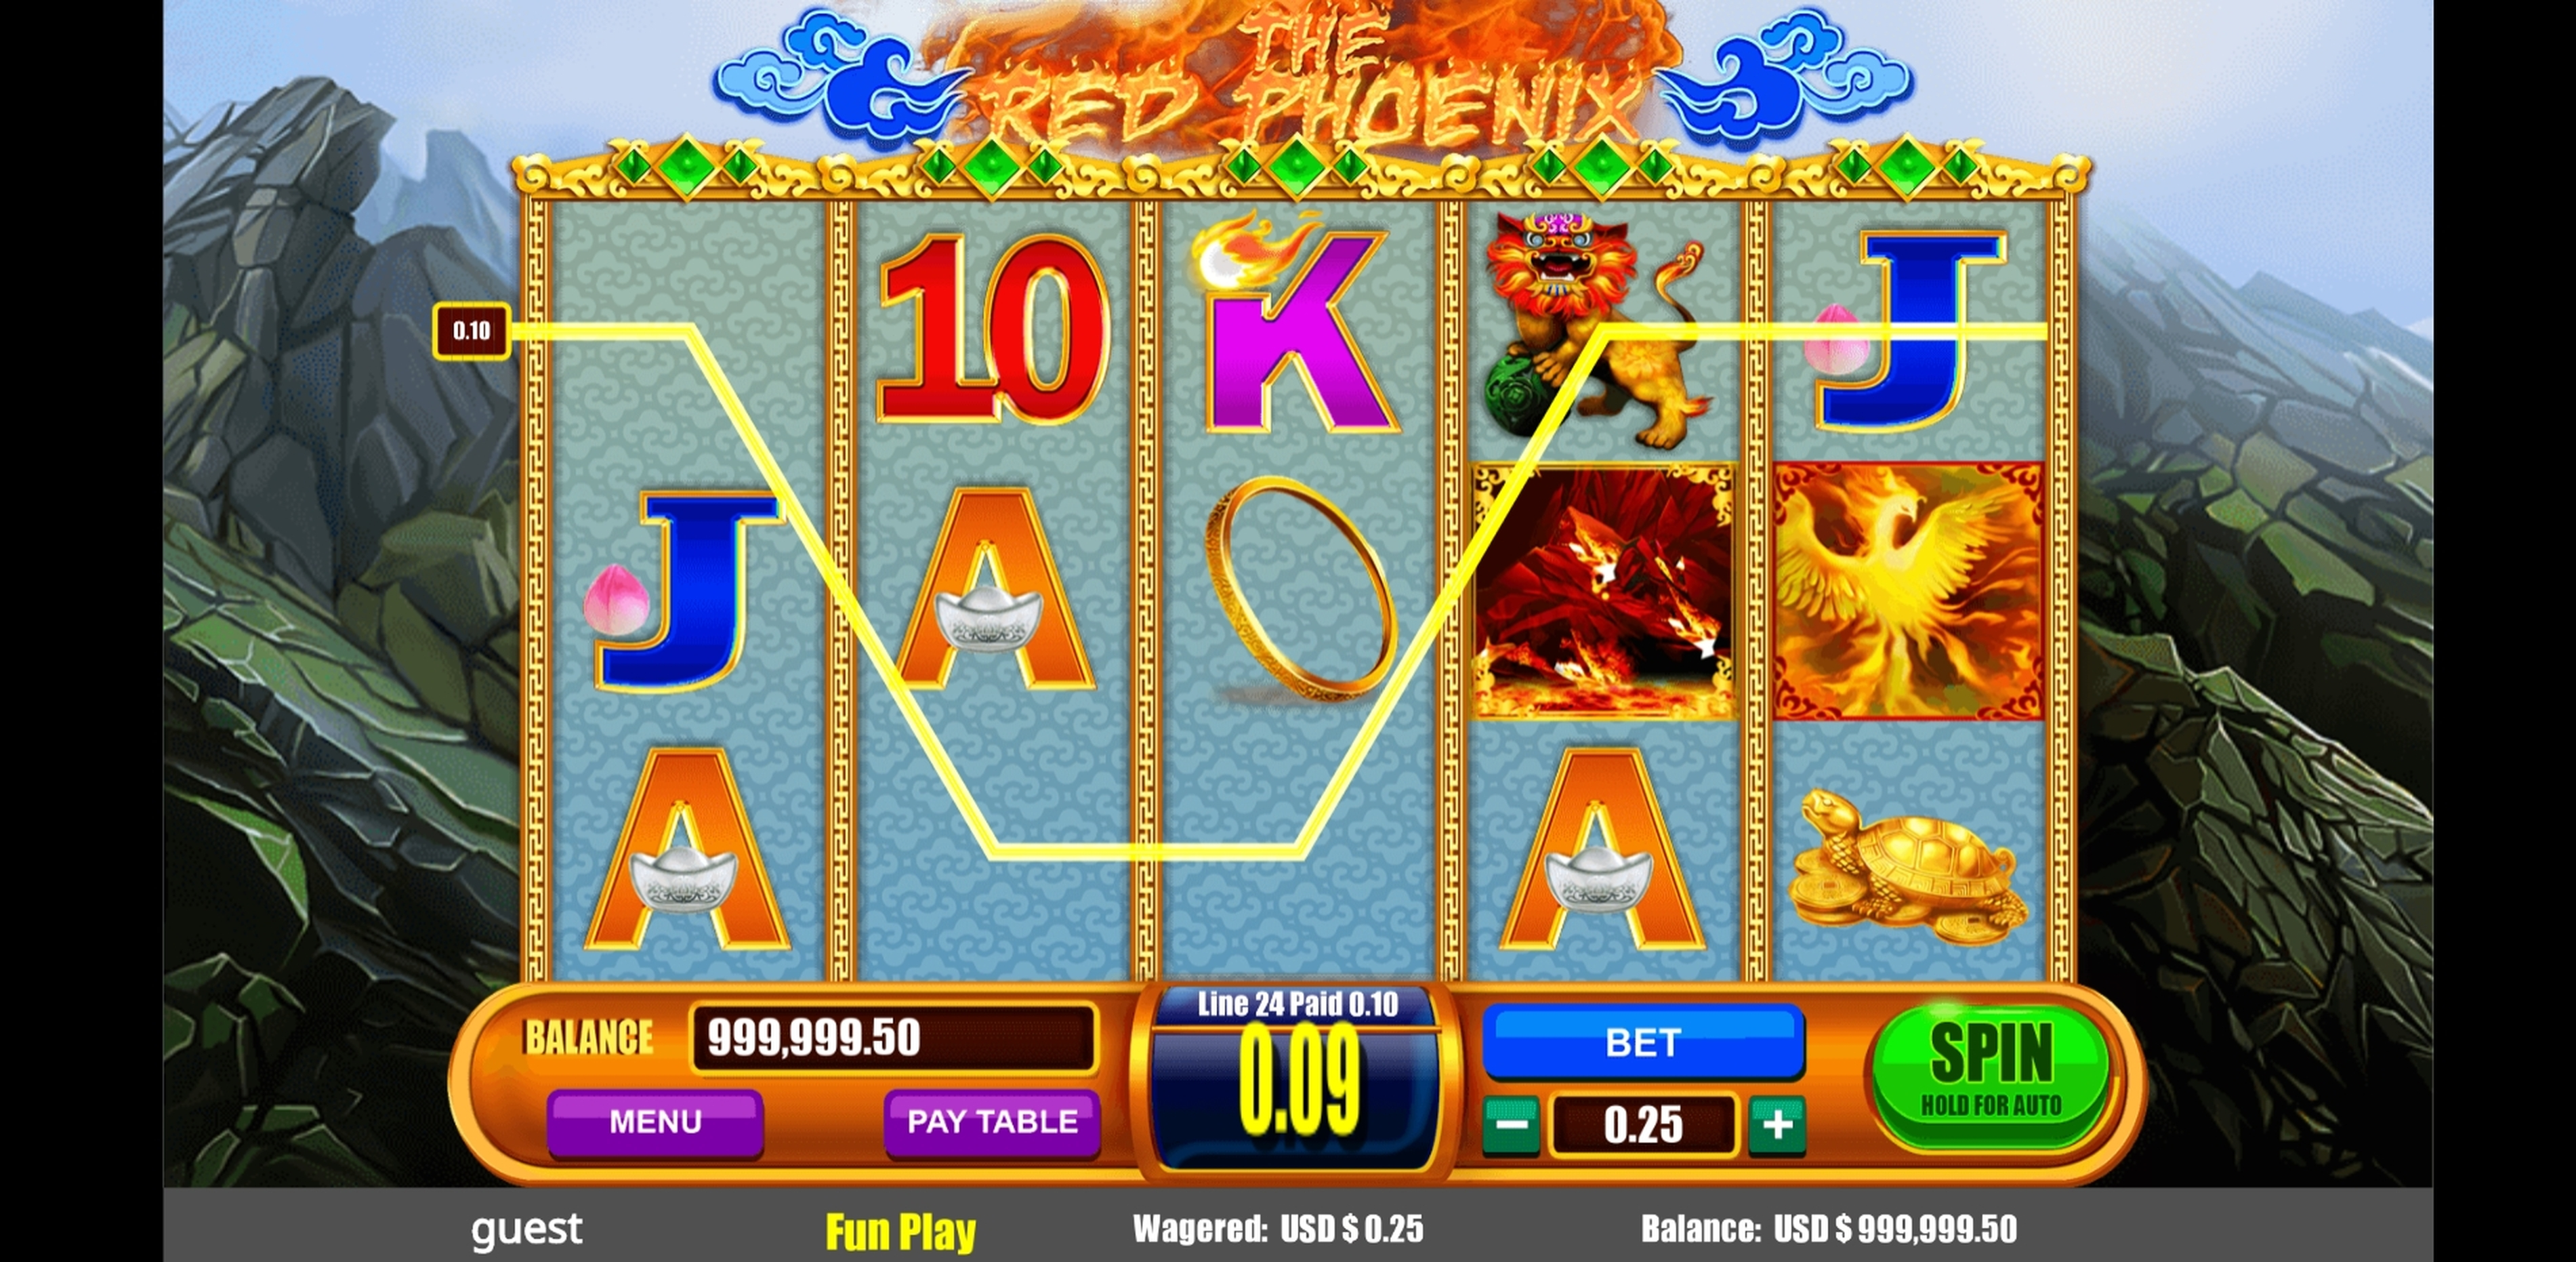 Win Money in The Red Phoenix Free Slot Game by August Gaming